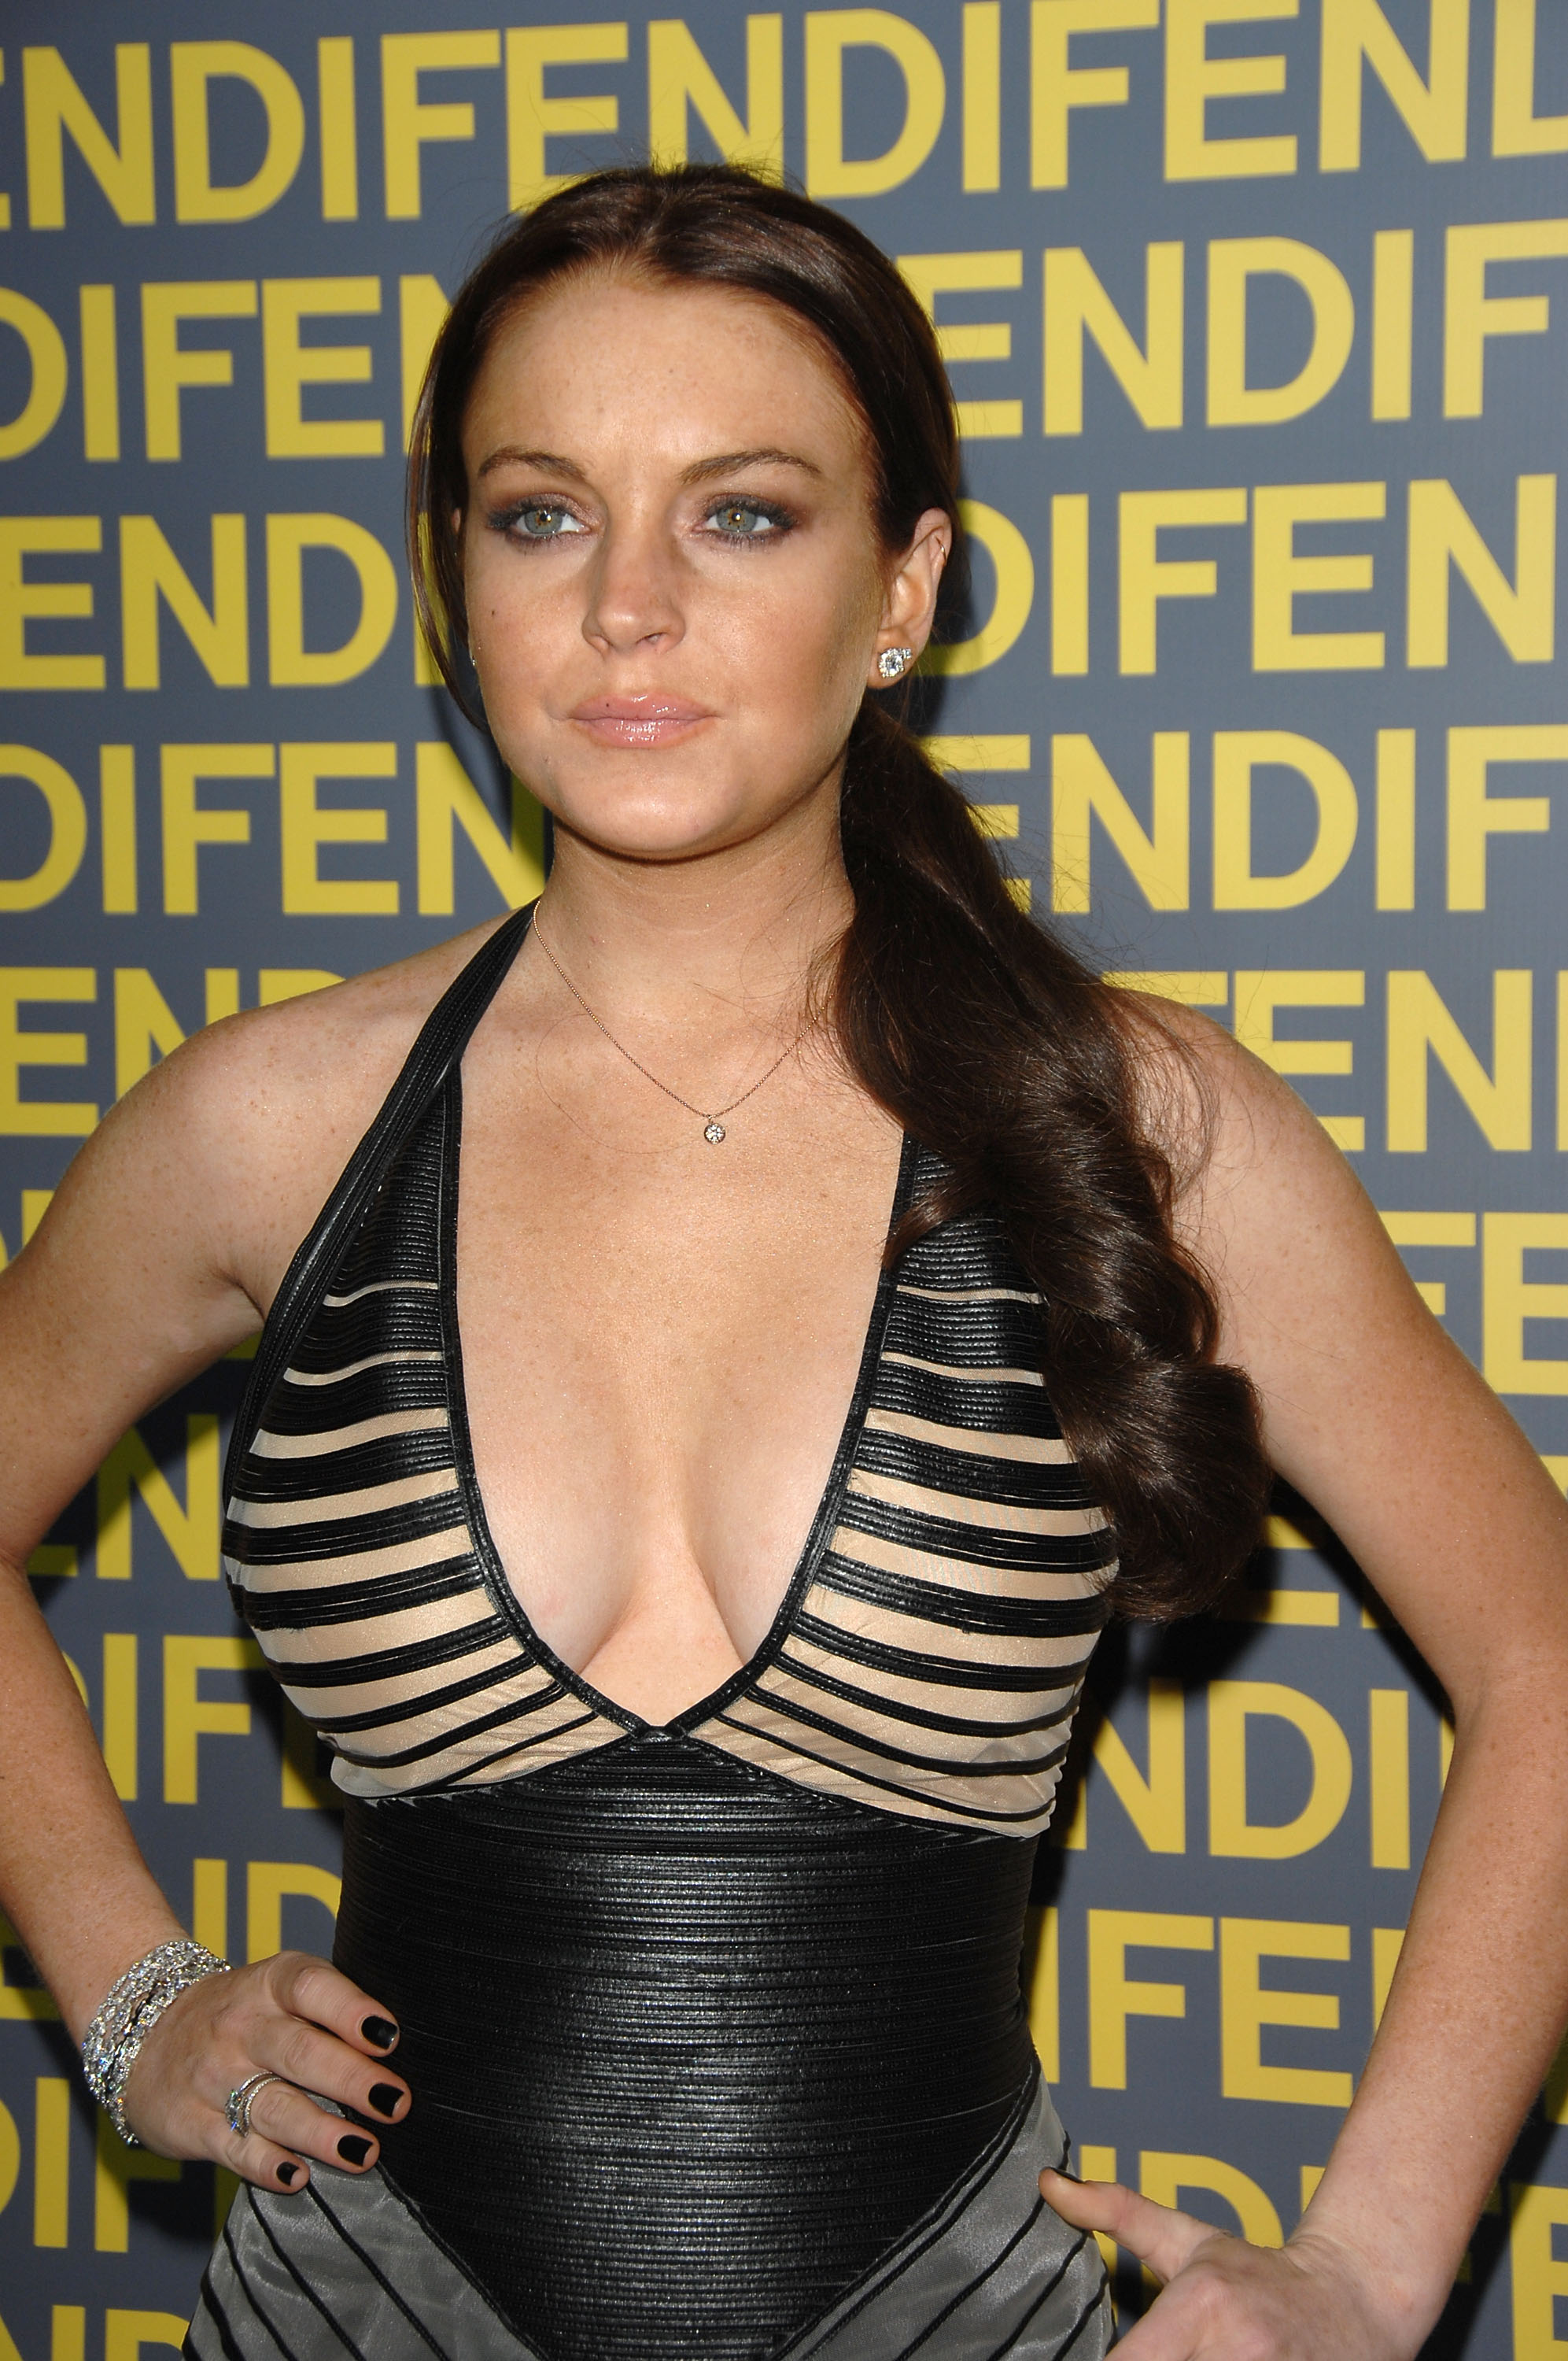 97934_Lindsay_Lohan_-_Fendi_Celebrates_Redesigned_Rodeo_Drive_Flagship_Store_195_122_937lo.jpg